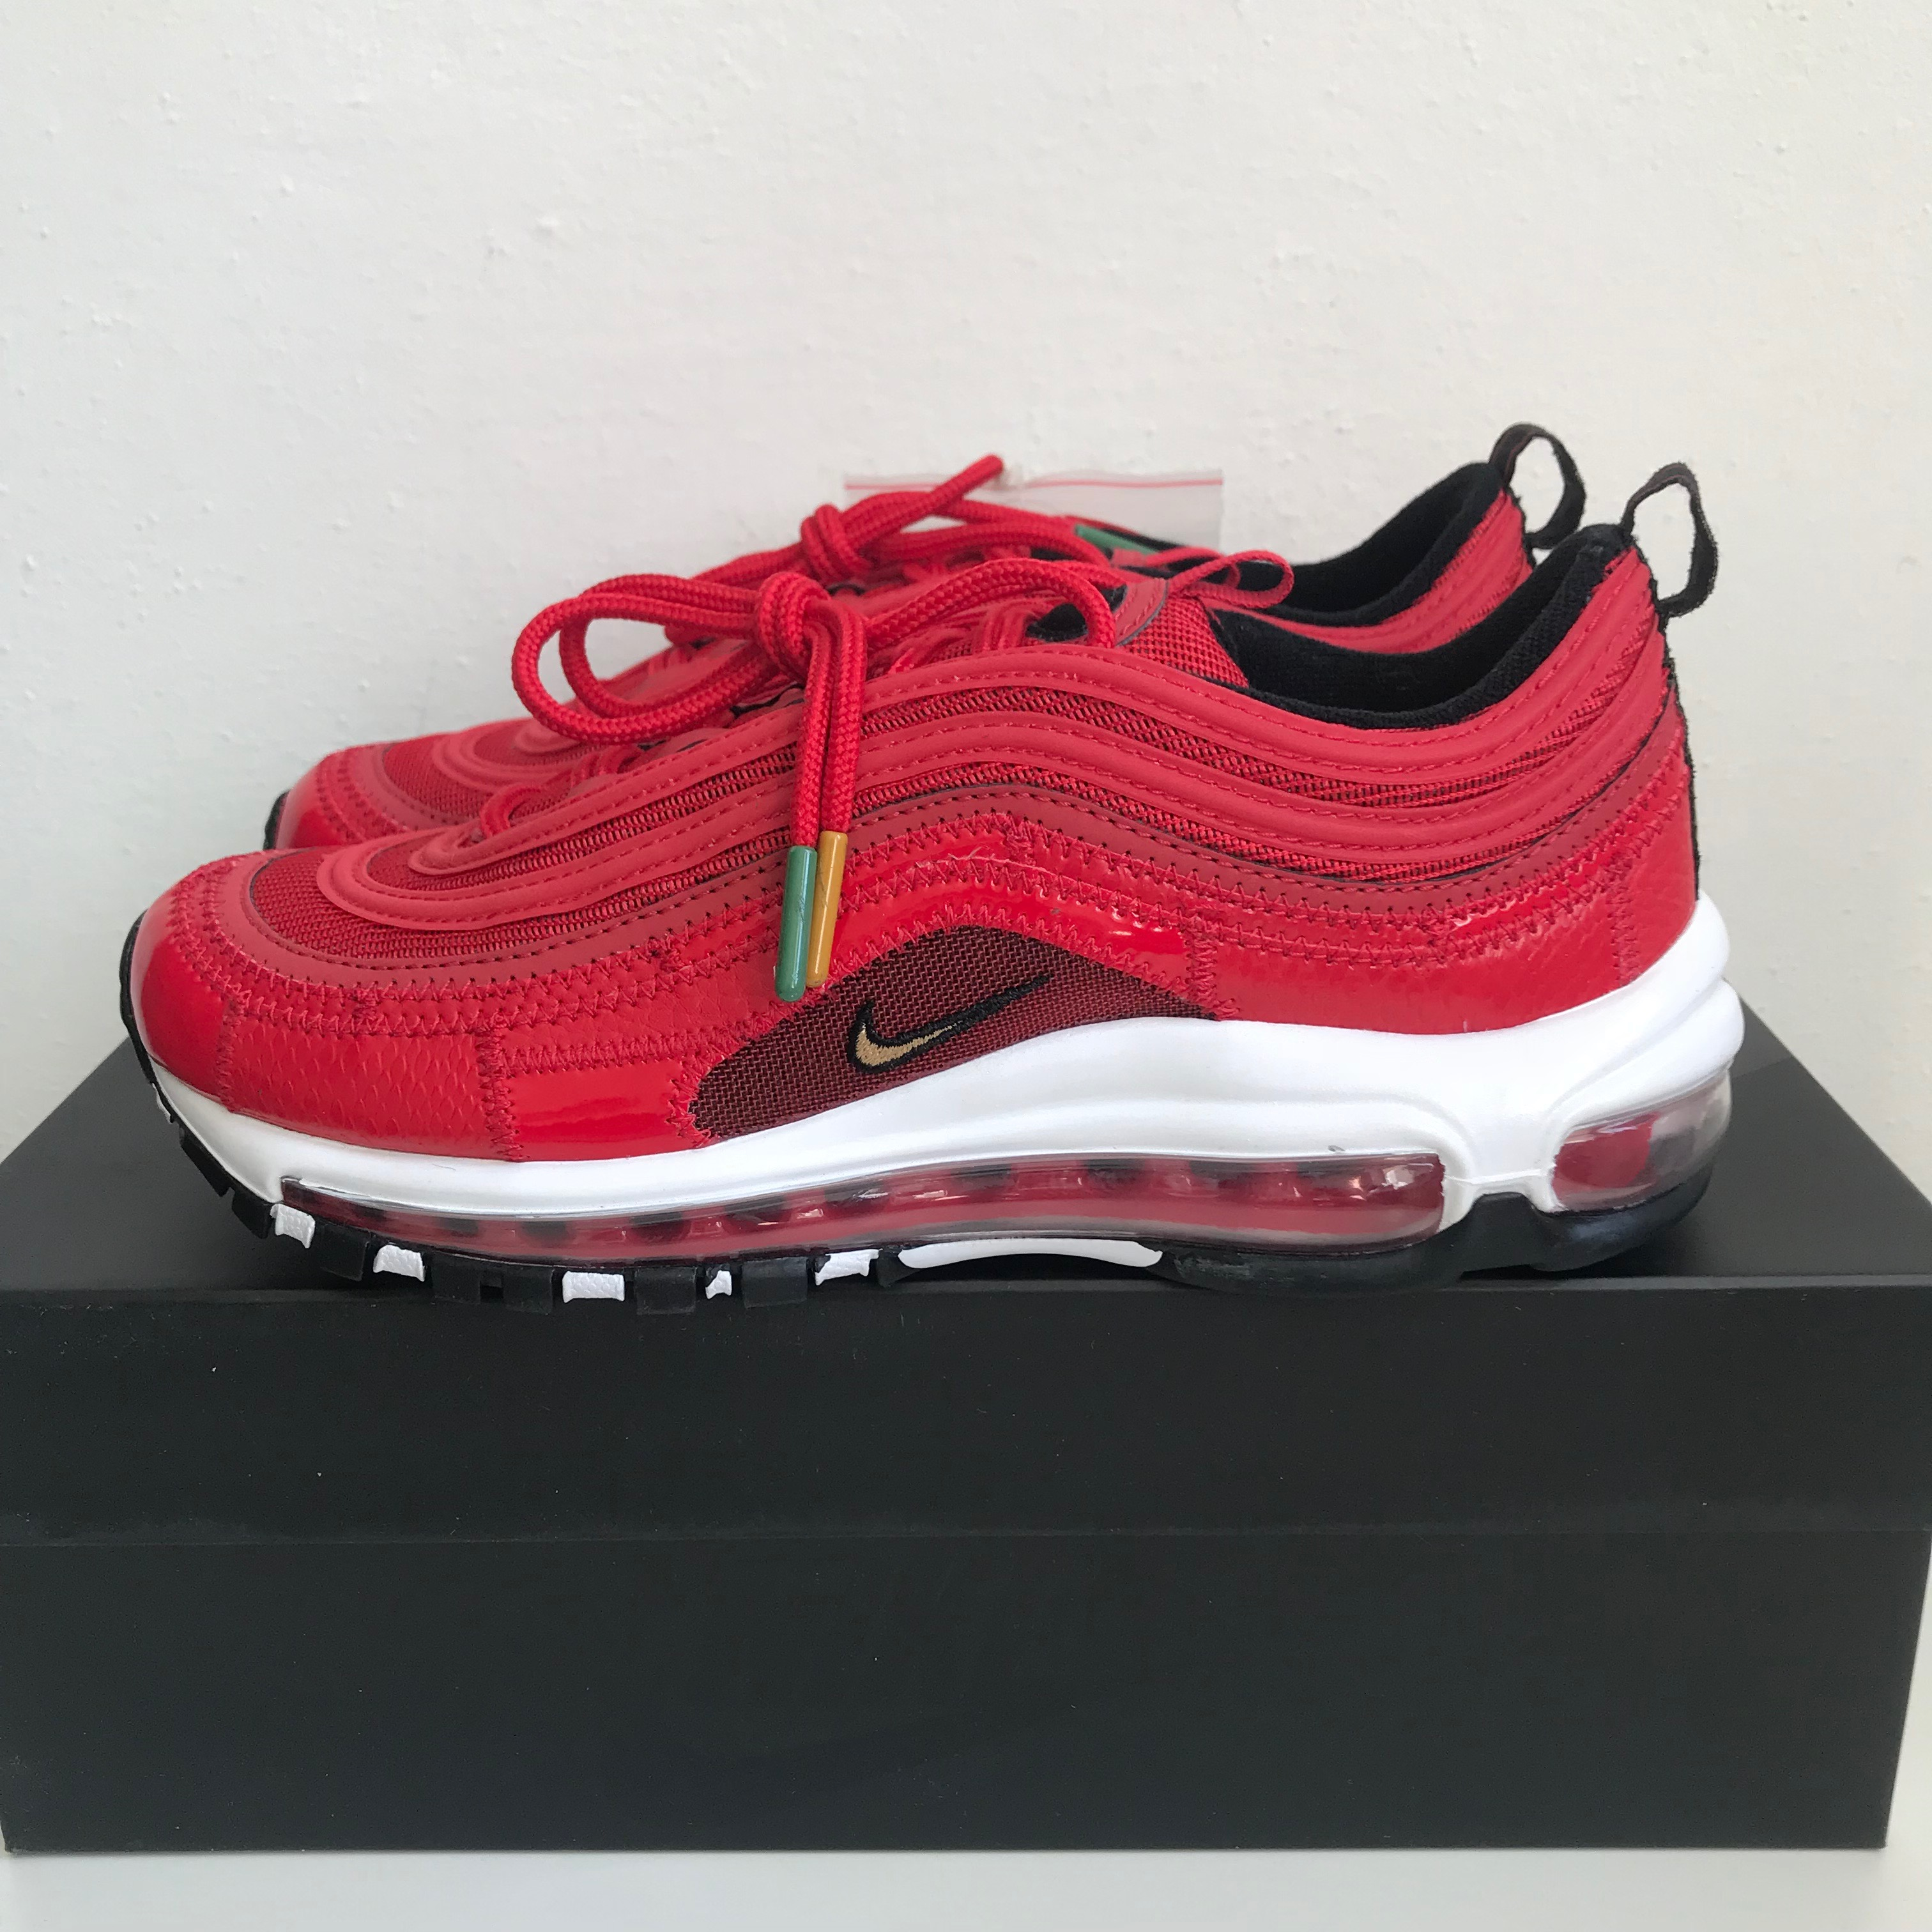 half off b01e8 b1096 Nike Air Max 97 CR7 Patchwork Red Cristiano Ronaldo GS US 6.5Y